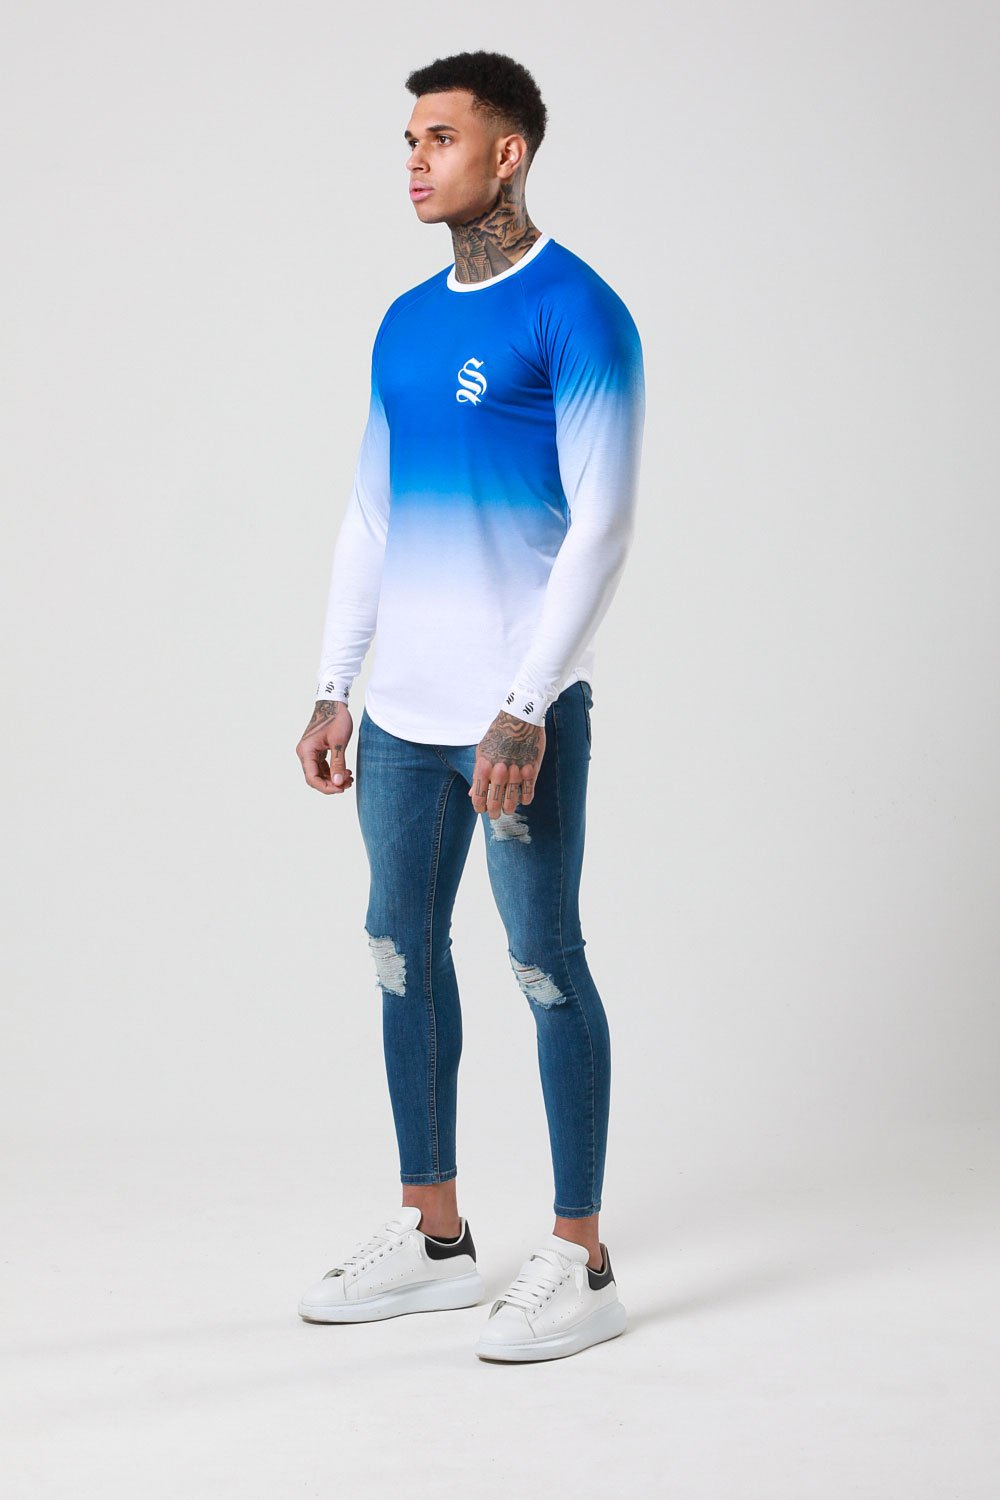 L/S DIP DYE TEE - BLUE/WHITE BY SINNERS ATTIRE - Brit Boss